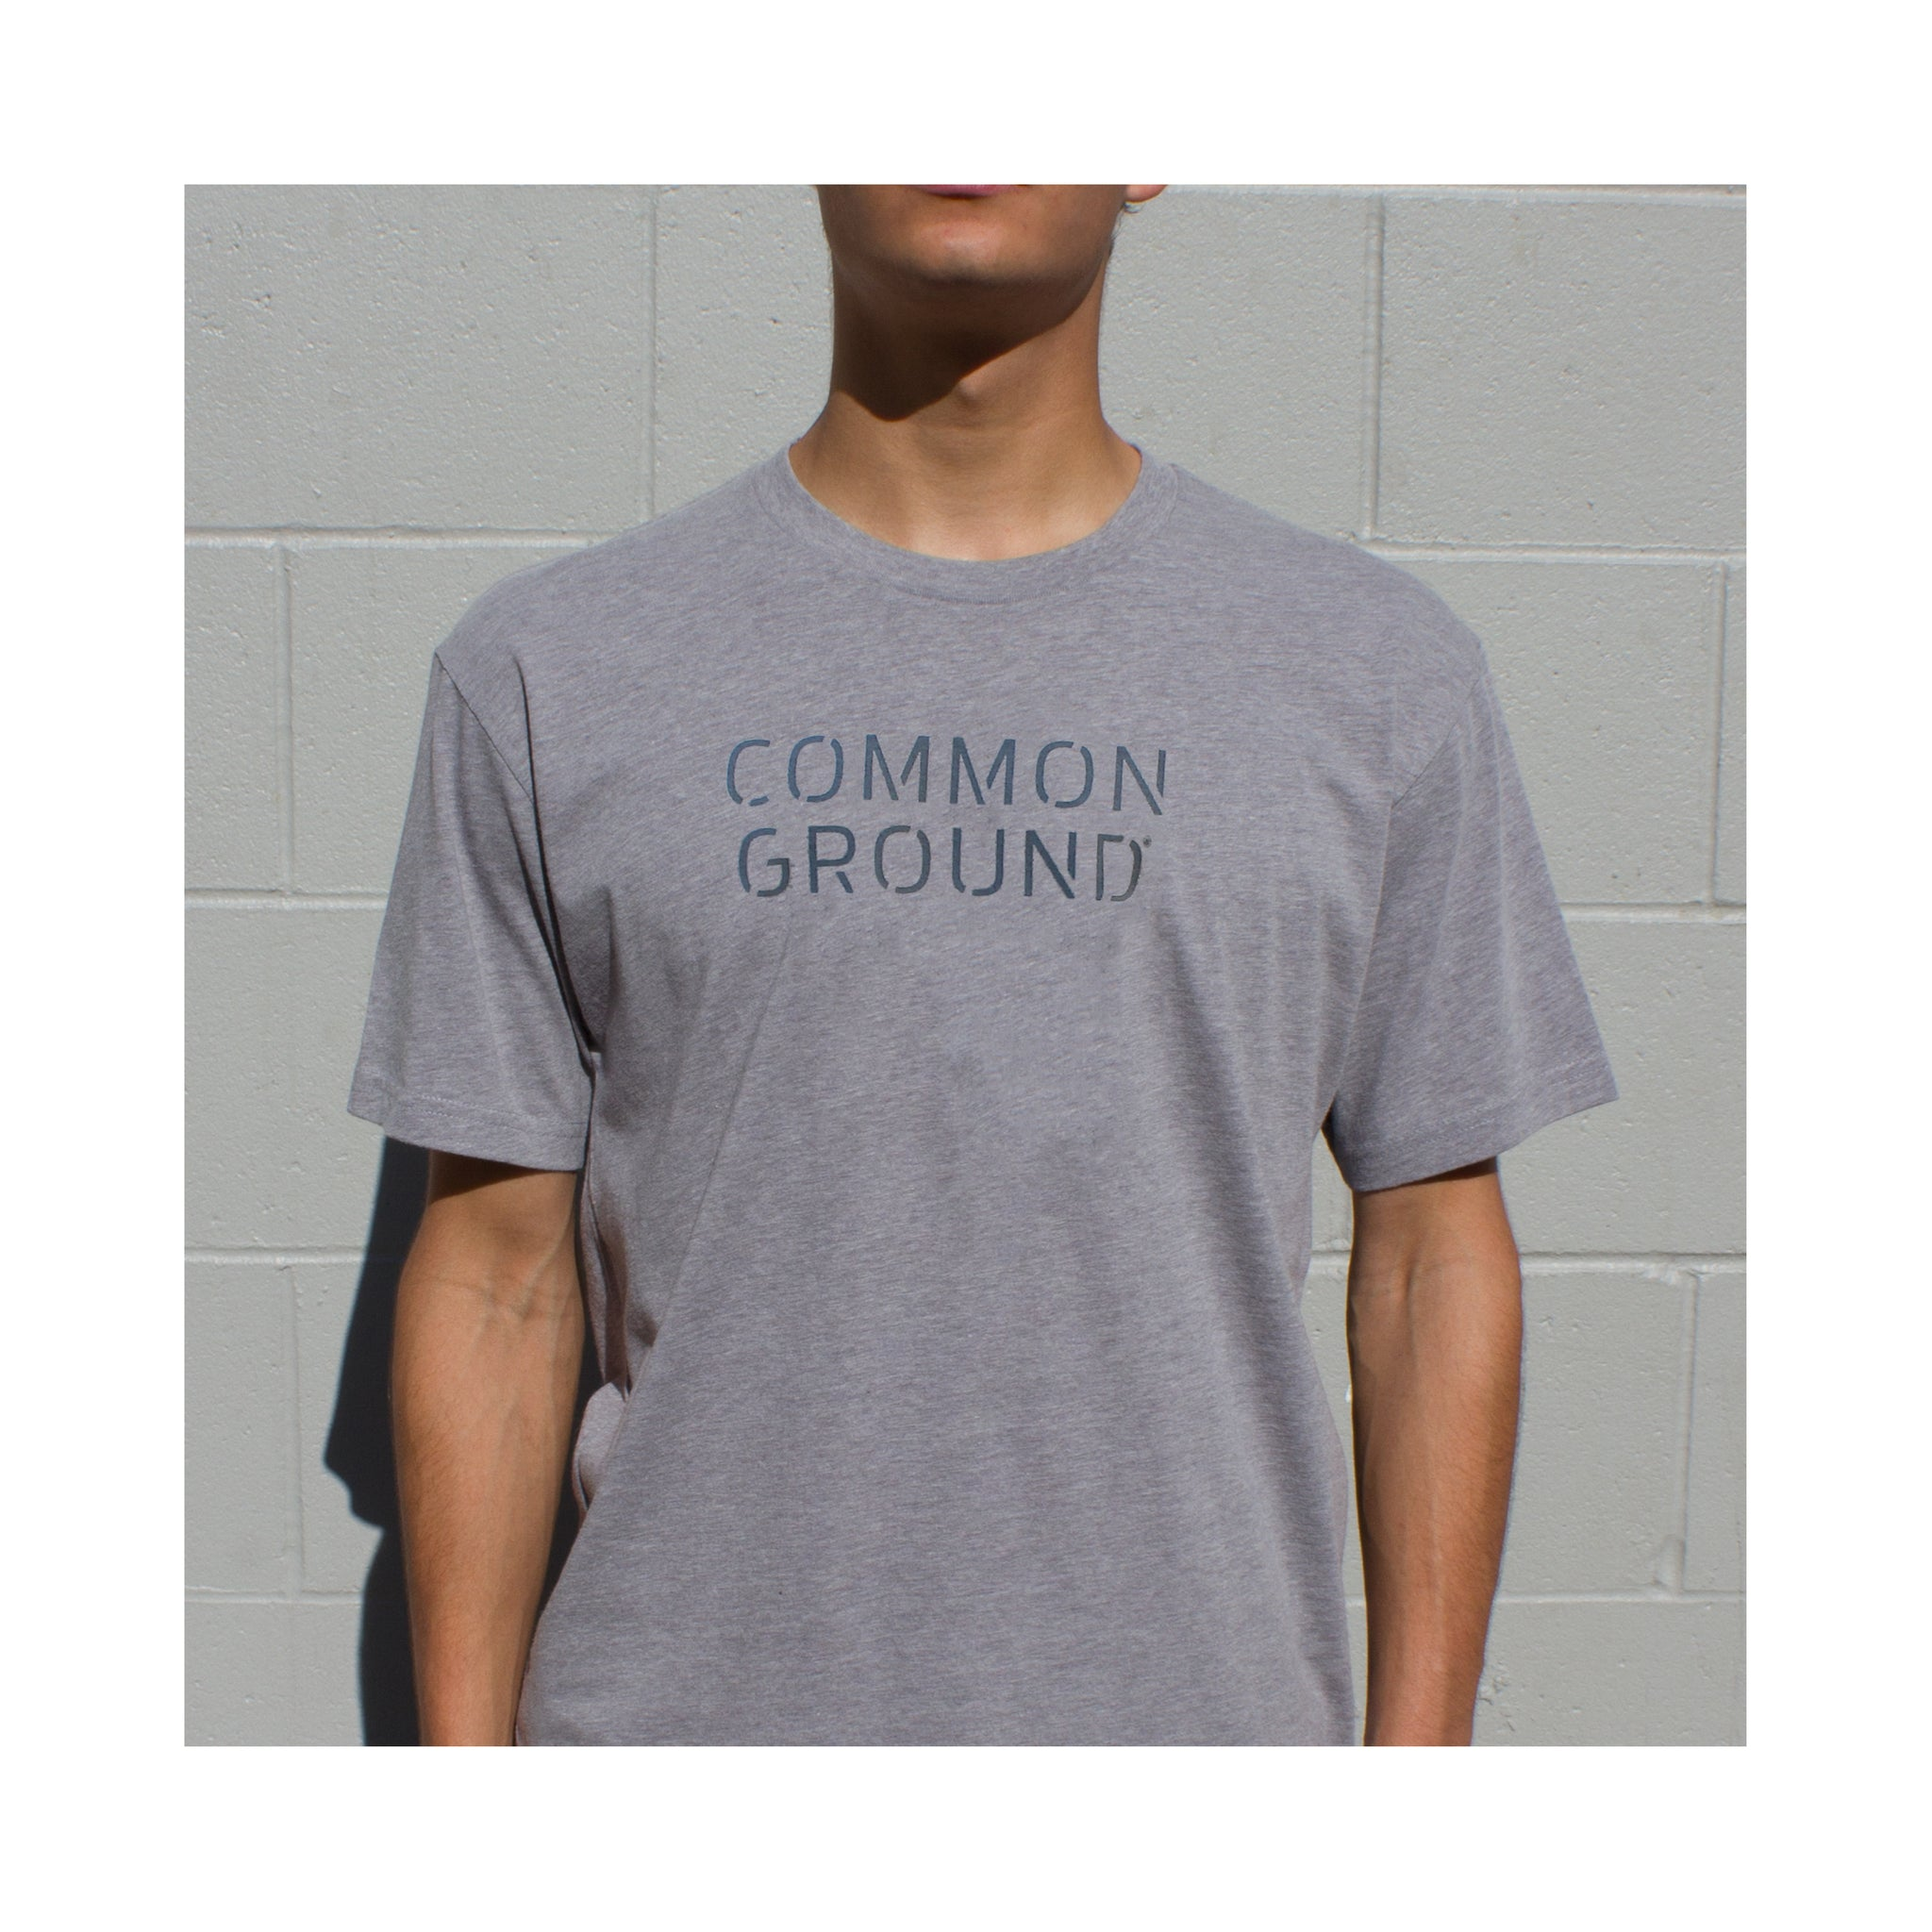 Dark_Heather_Gray - Common Ground T shirt Front on Model